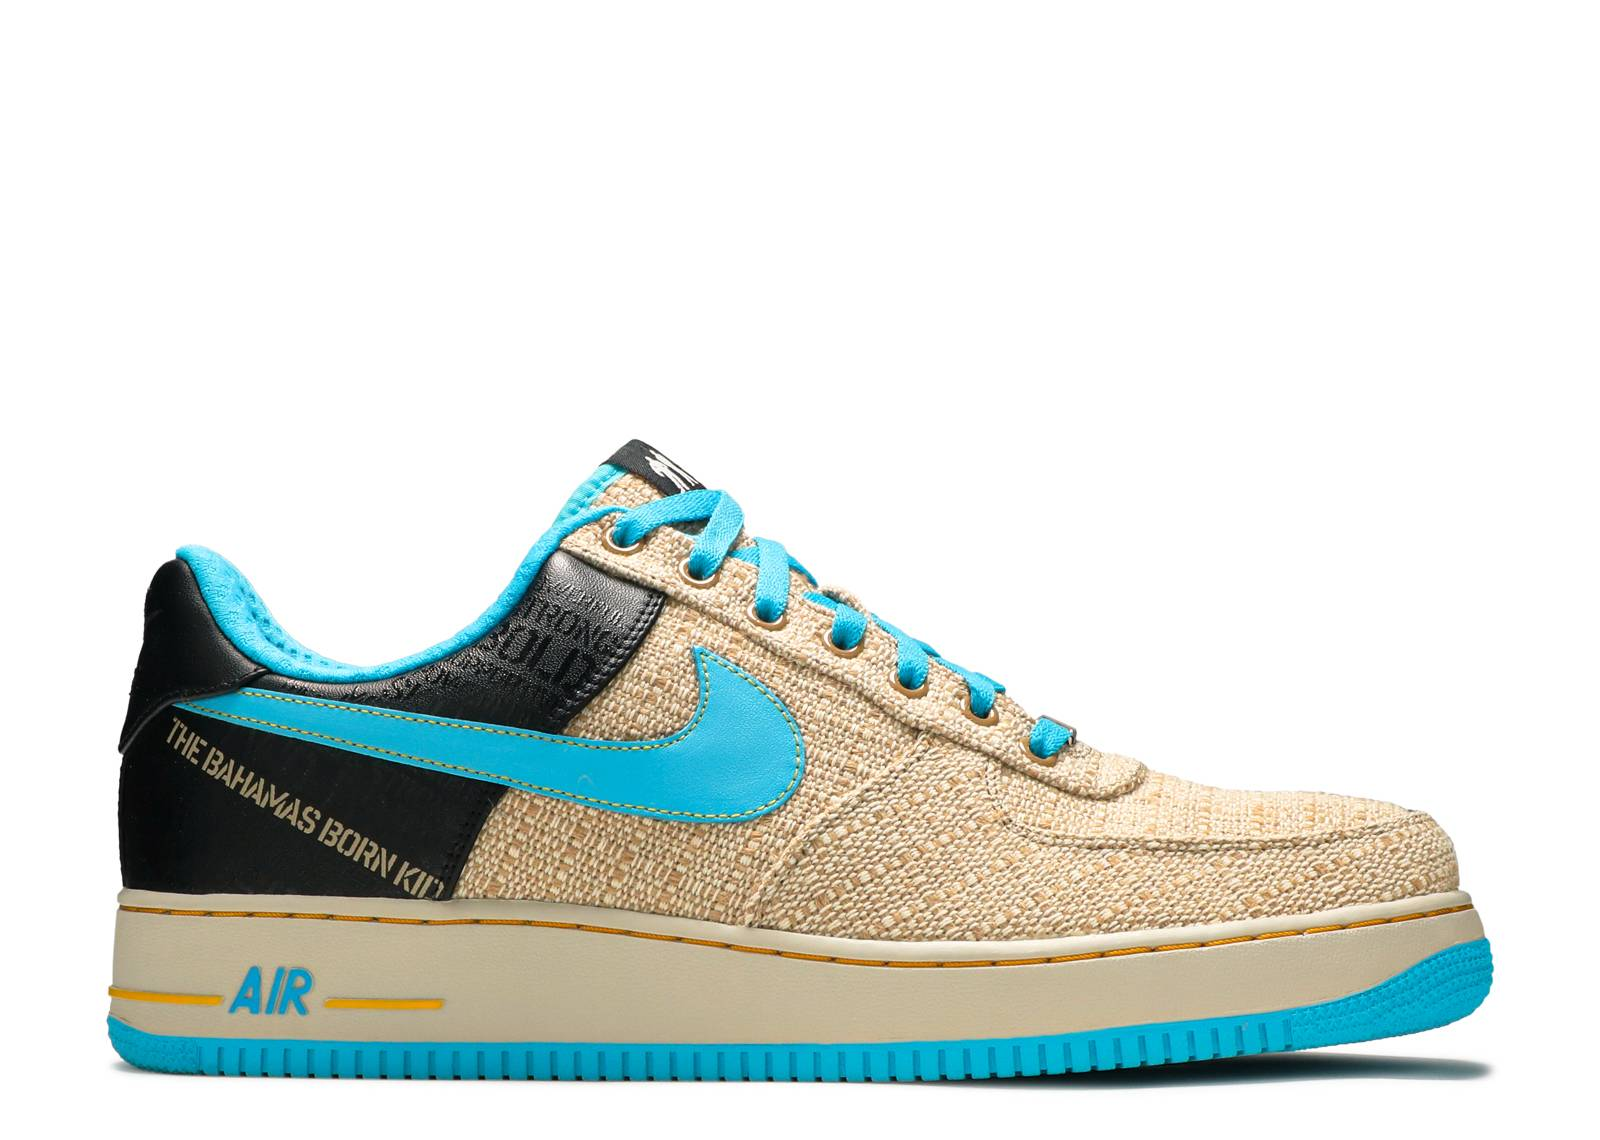 Nike Air Force 1 Thompson Six Originale De La Marchandise